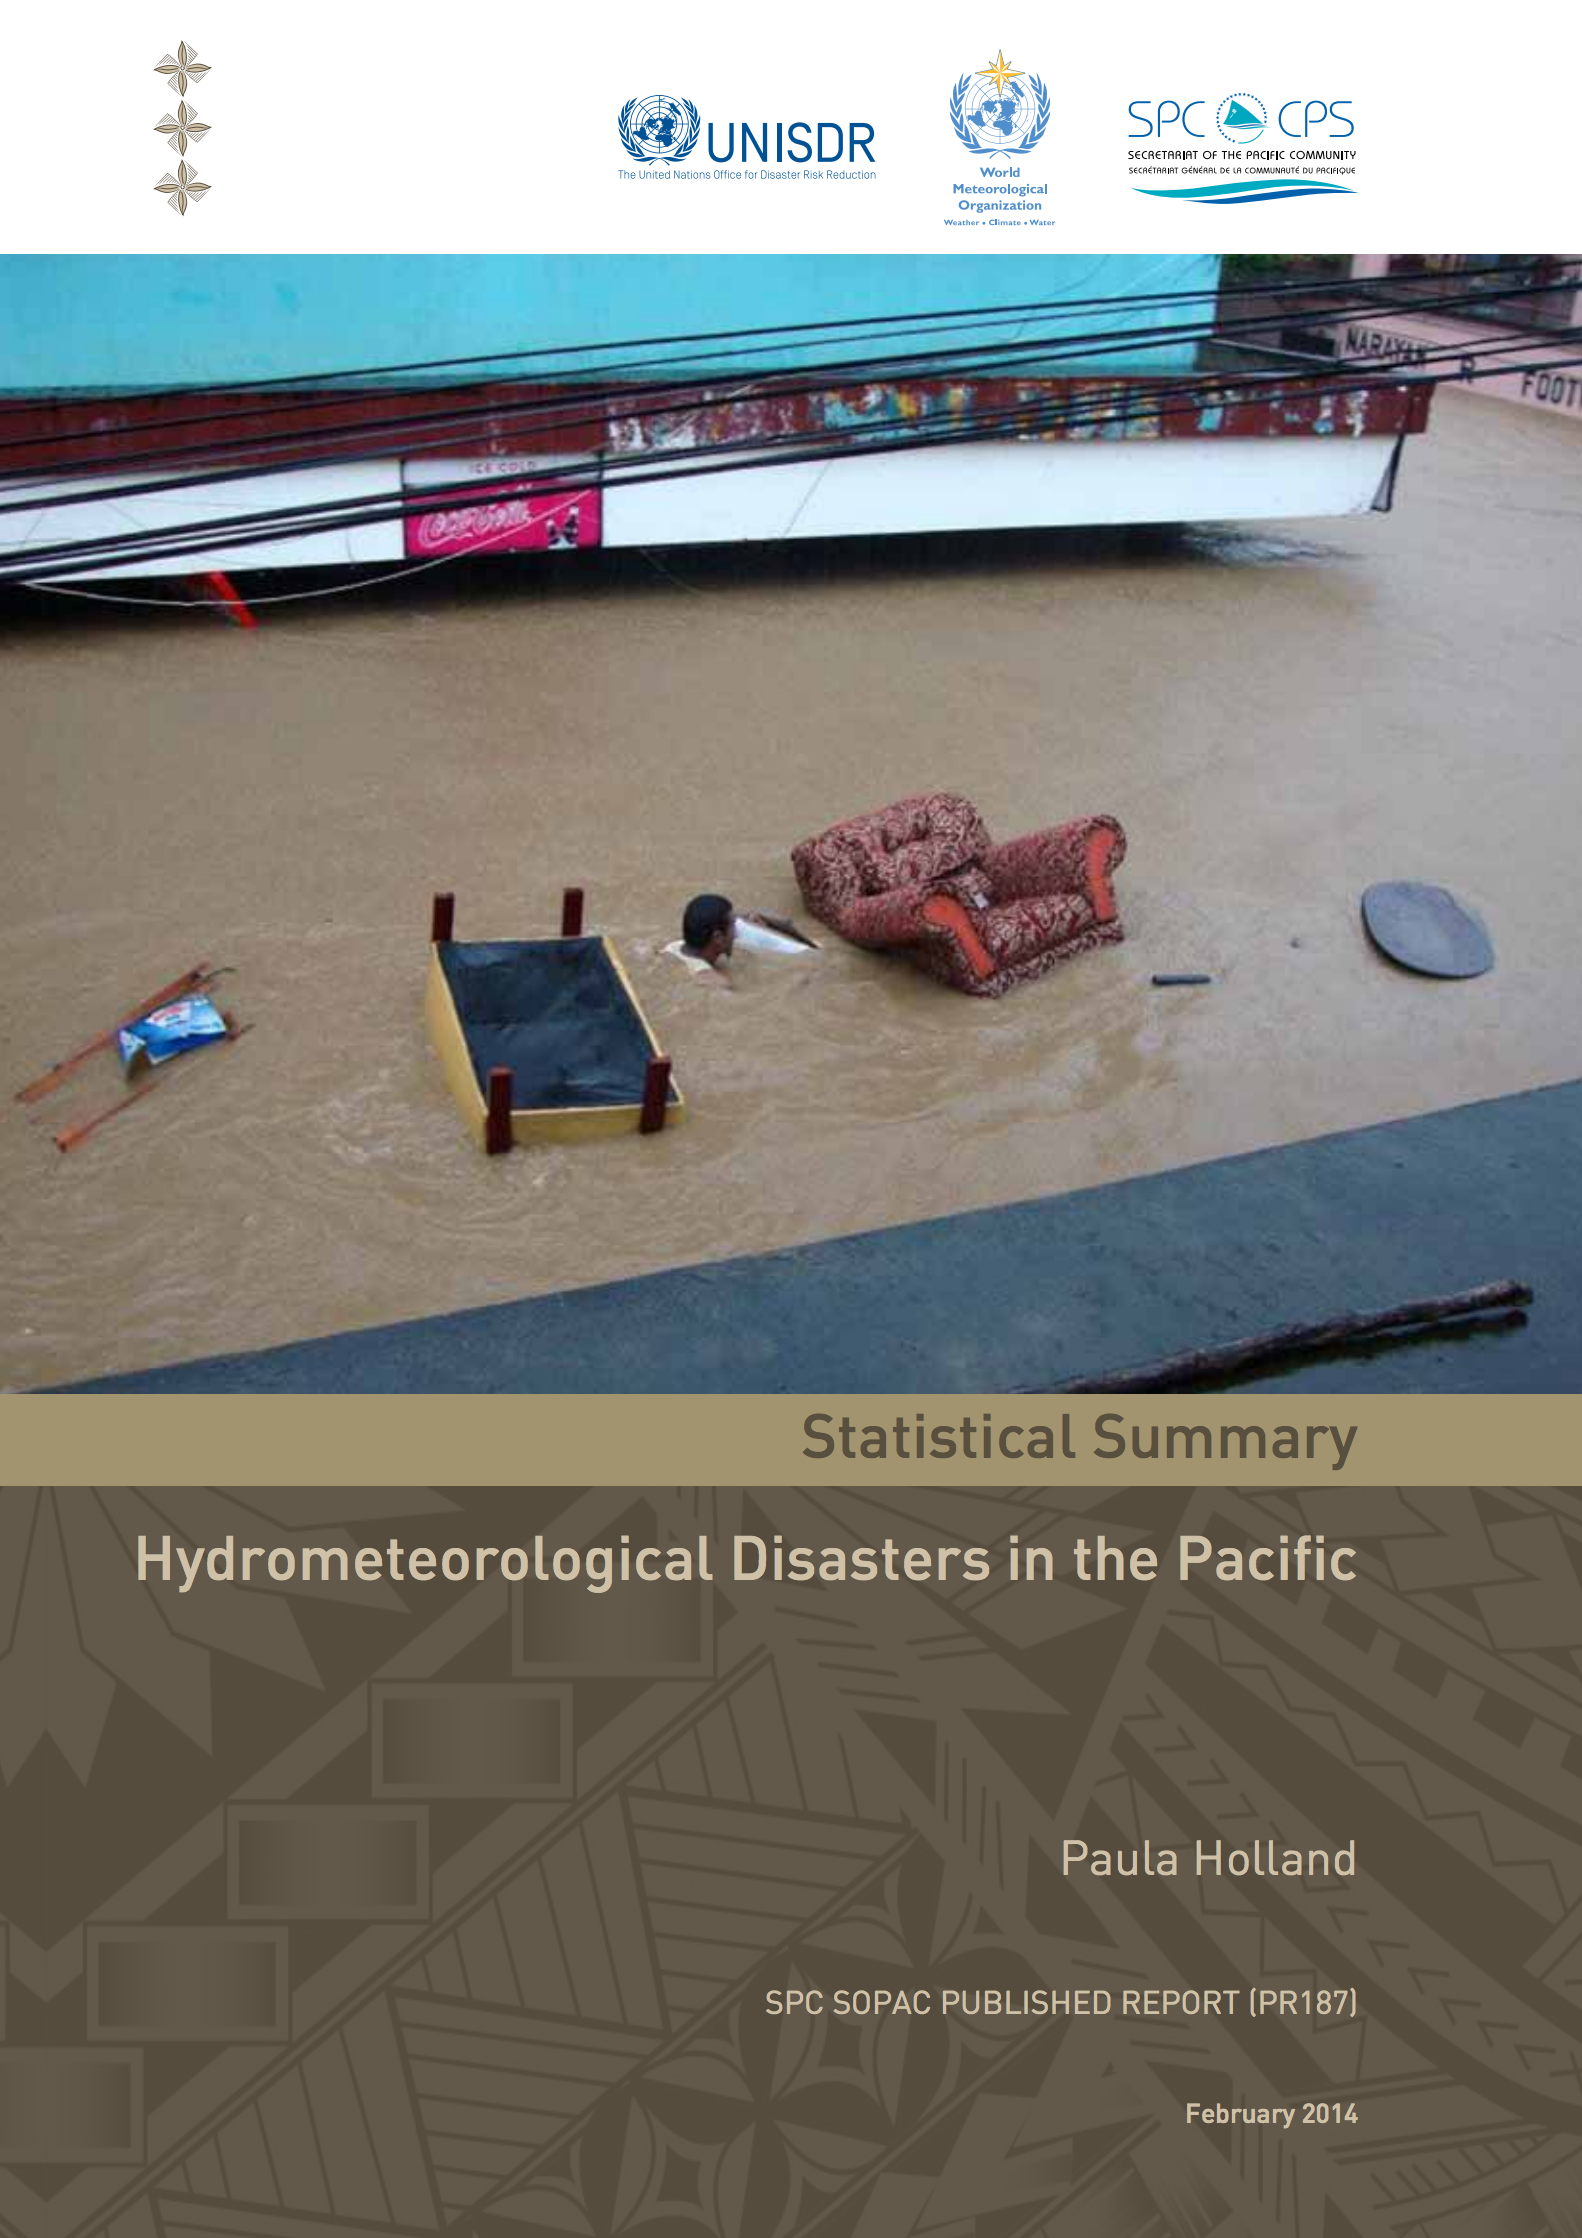 Hydrometeorological Disasters in the Pacific